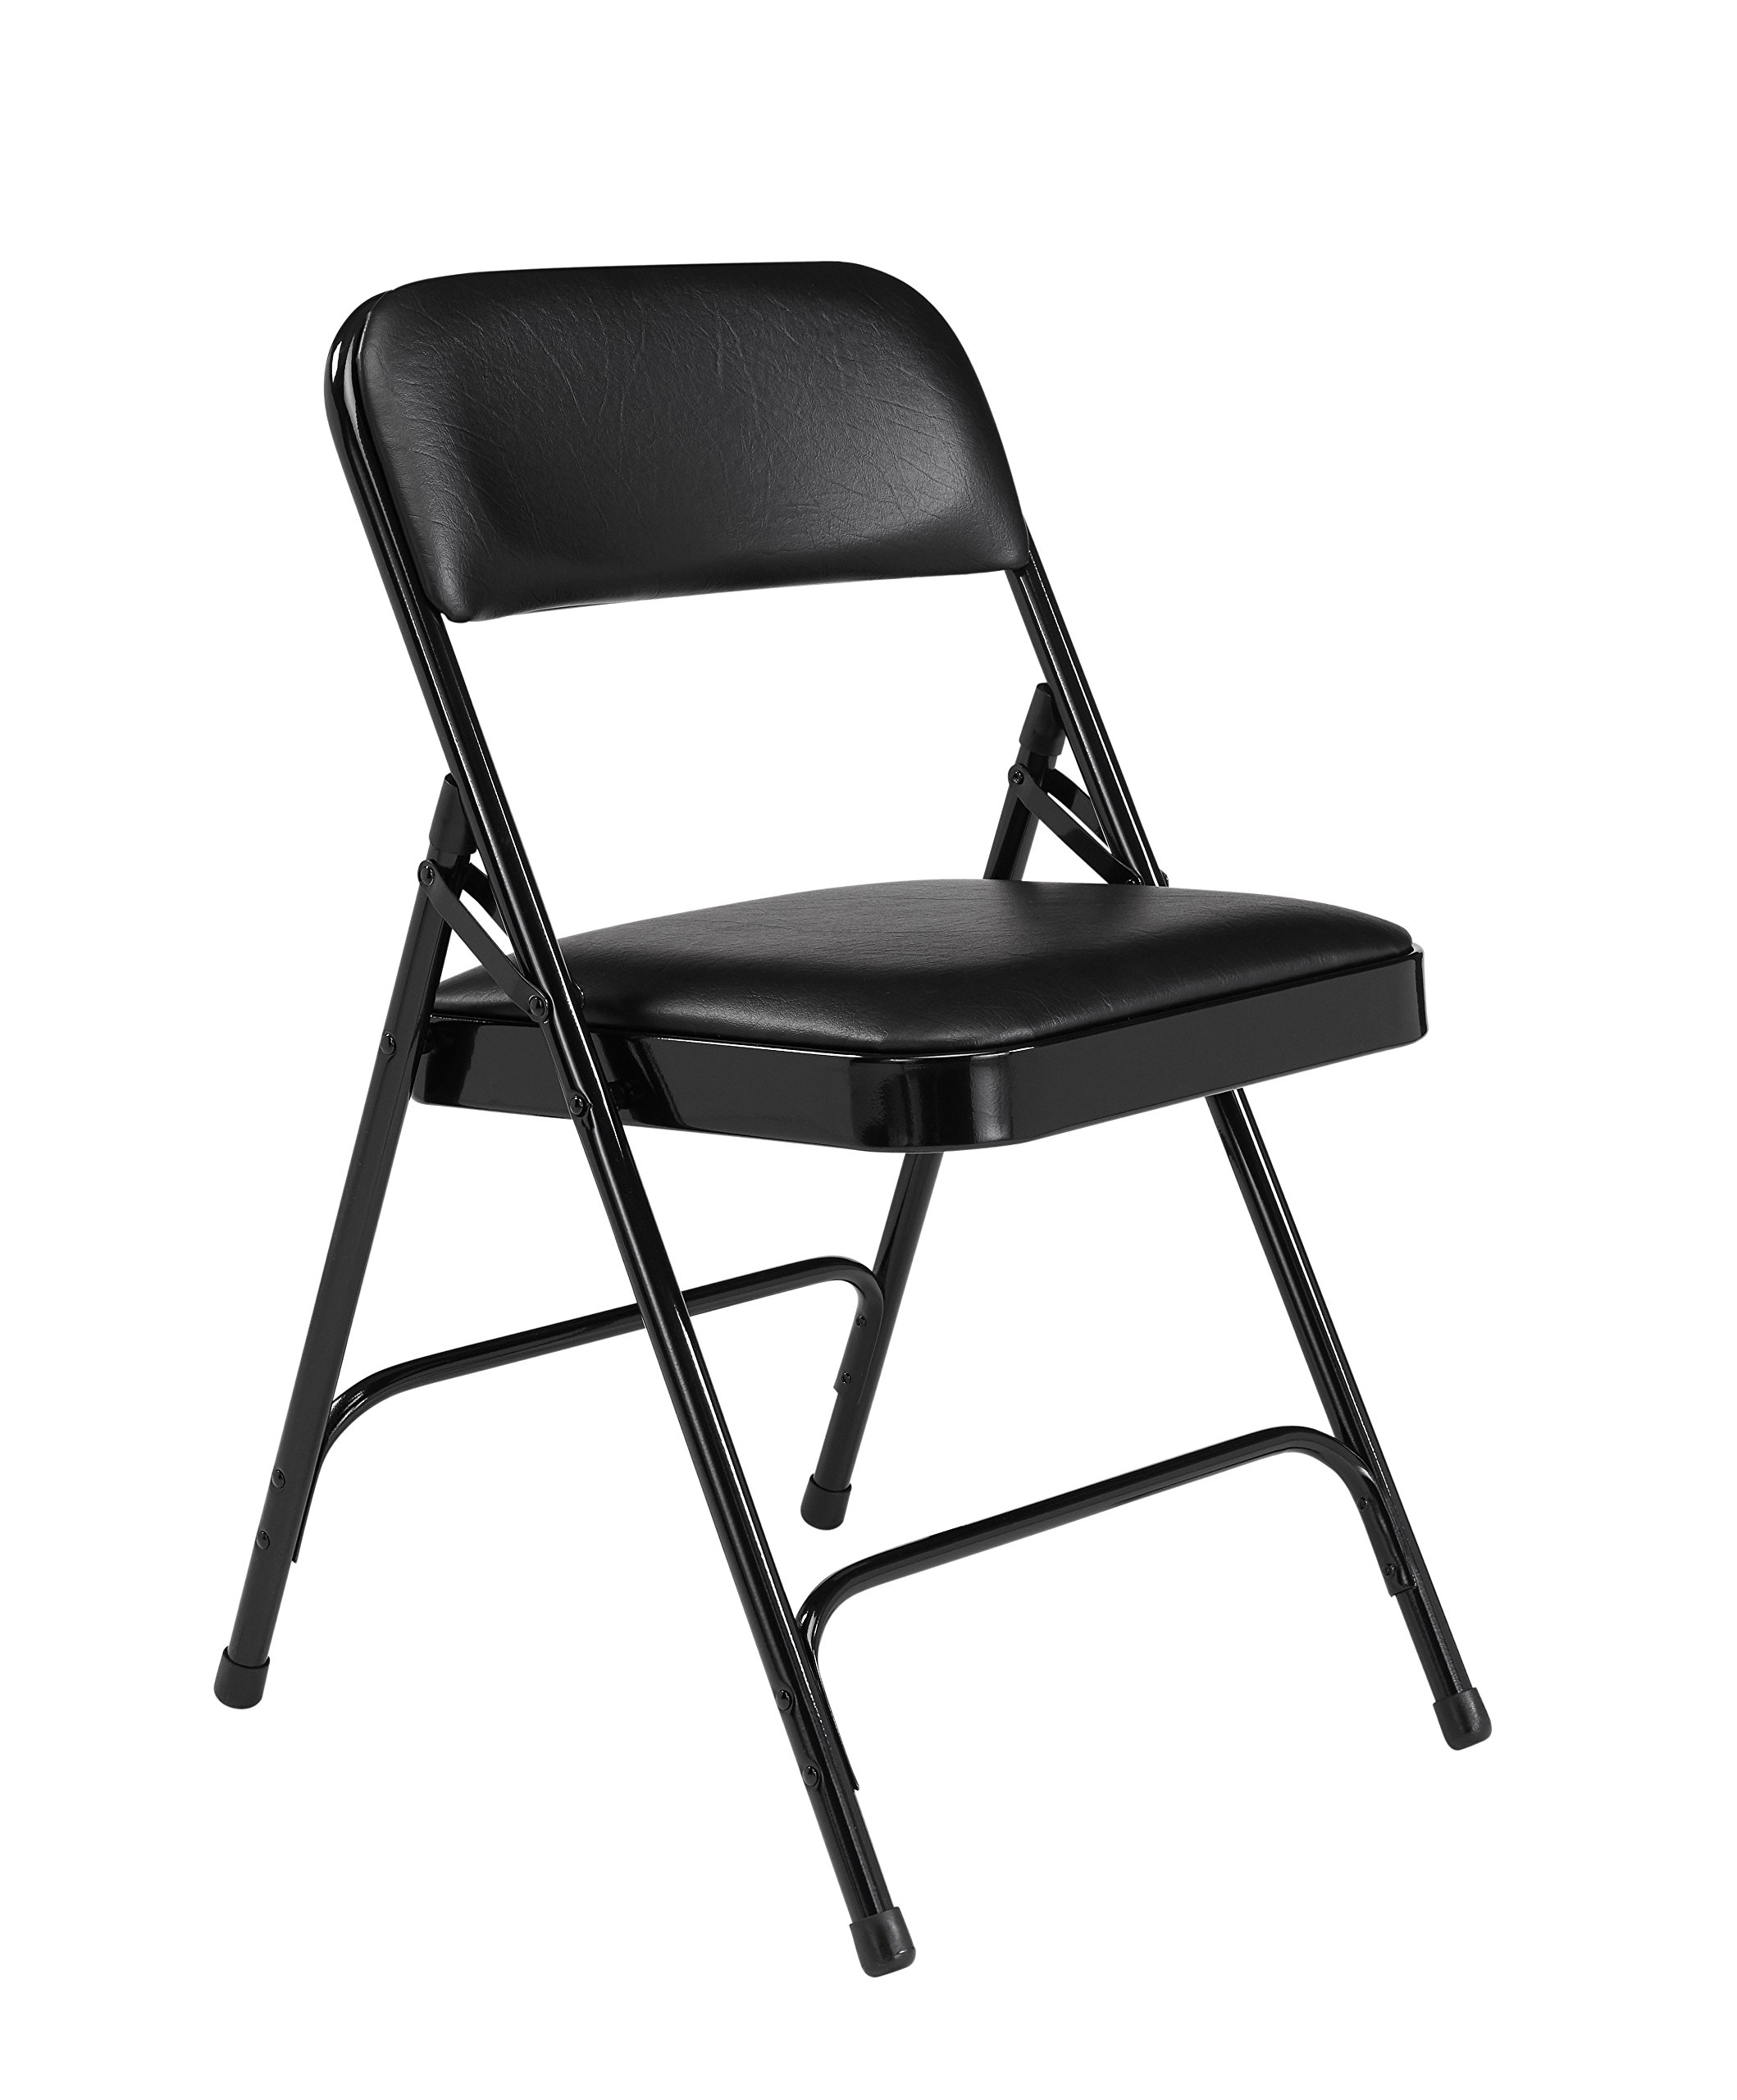 (4 Pack) NPS 1200 Series Premium Vinyl Upholstered Double Hinge Folding Chair, Caviar Black by National Public Seating